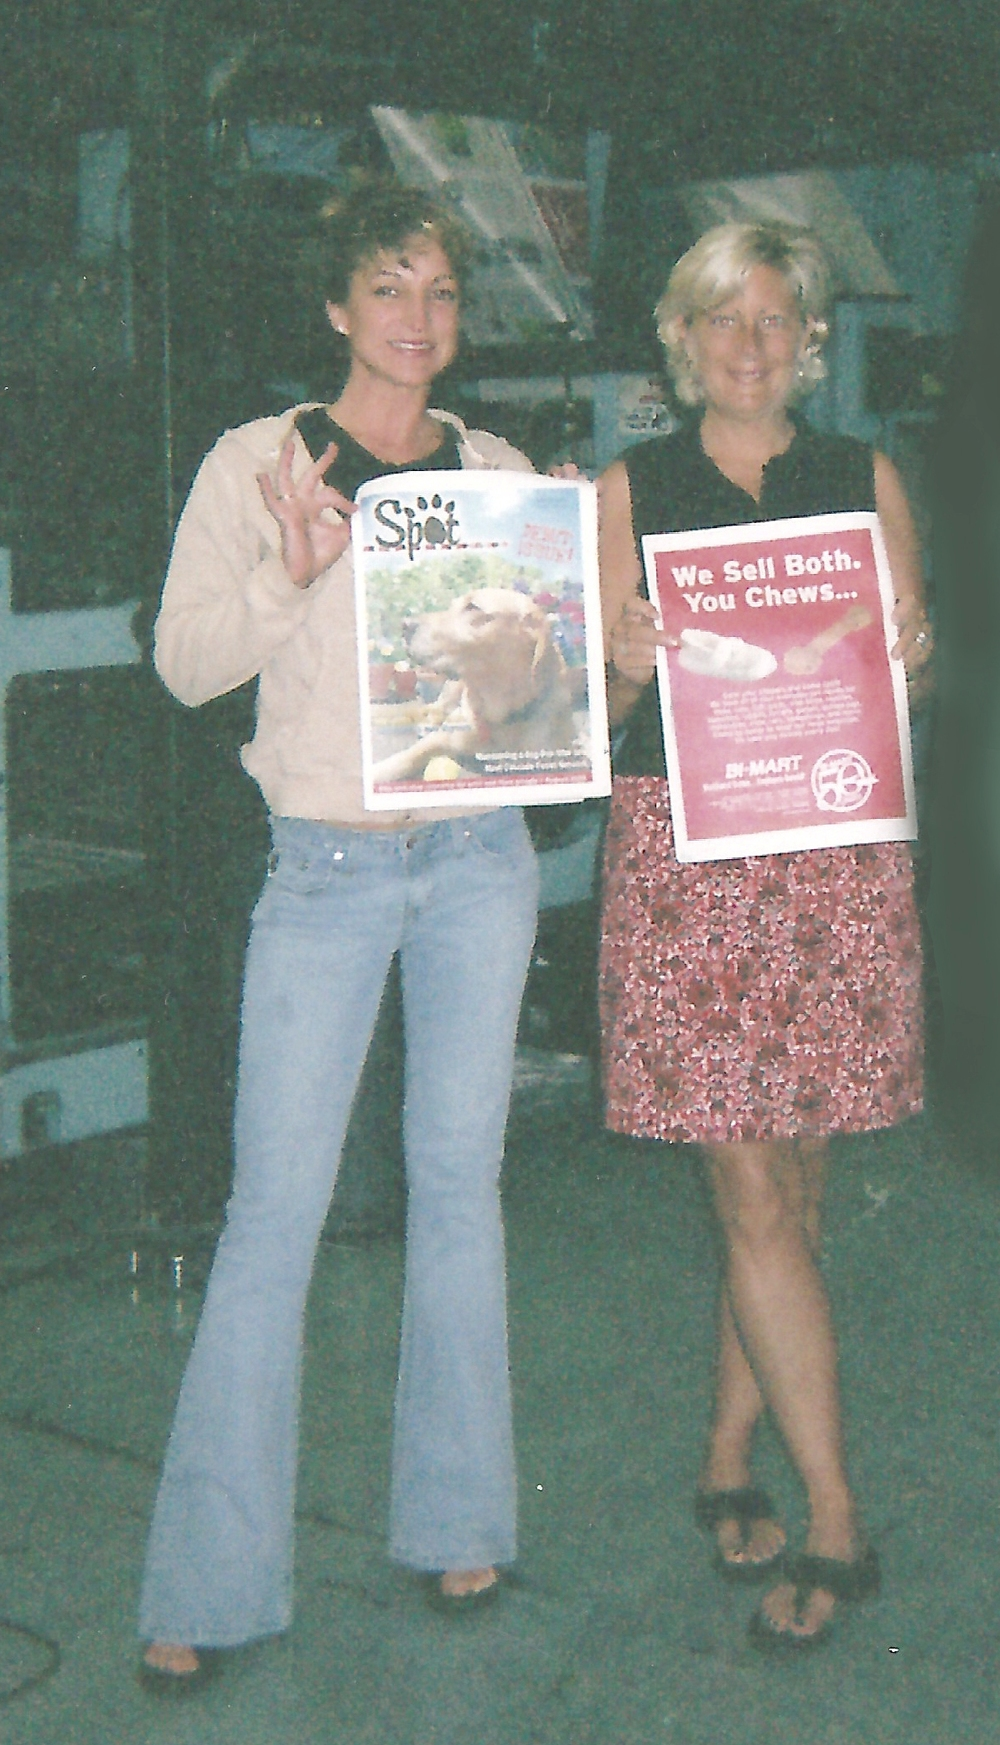 Jennifer McCammon (L) and Jenny Kamprath celebrate the first issue of Spot – Aug. '05, hot off the press